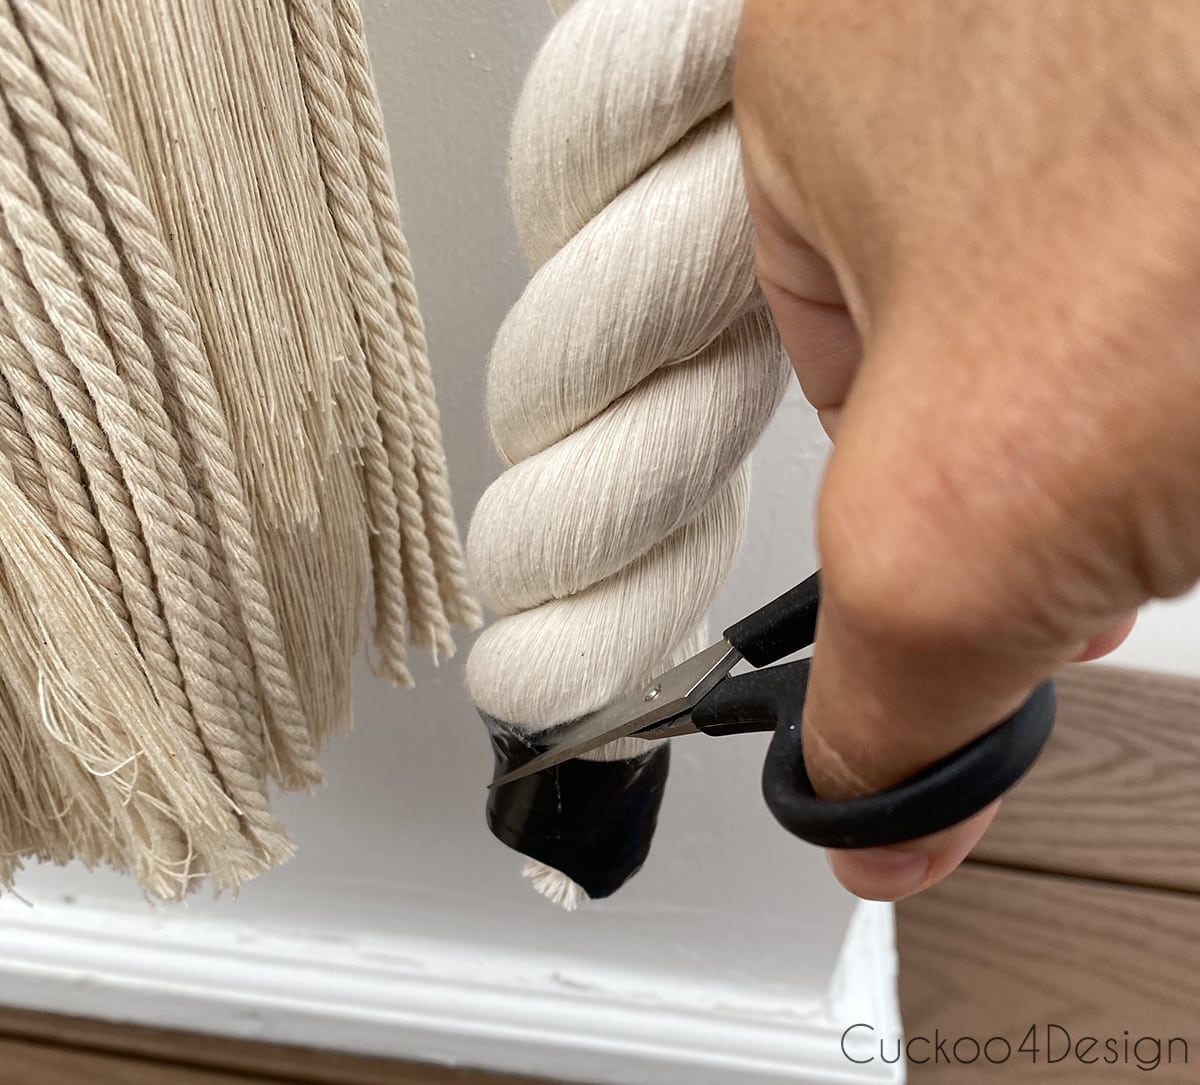 cutting tape at the bottom of the cotton rope